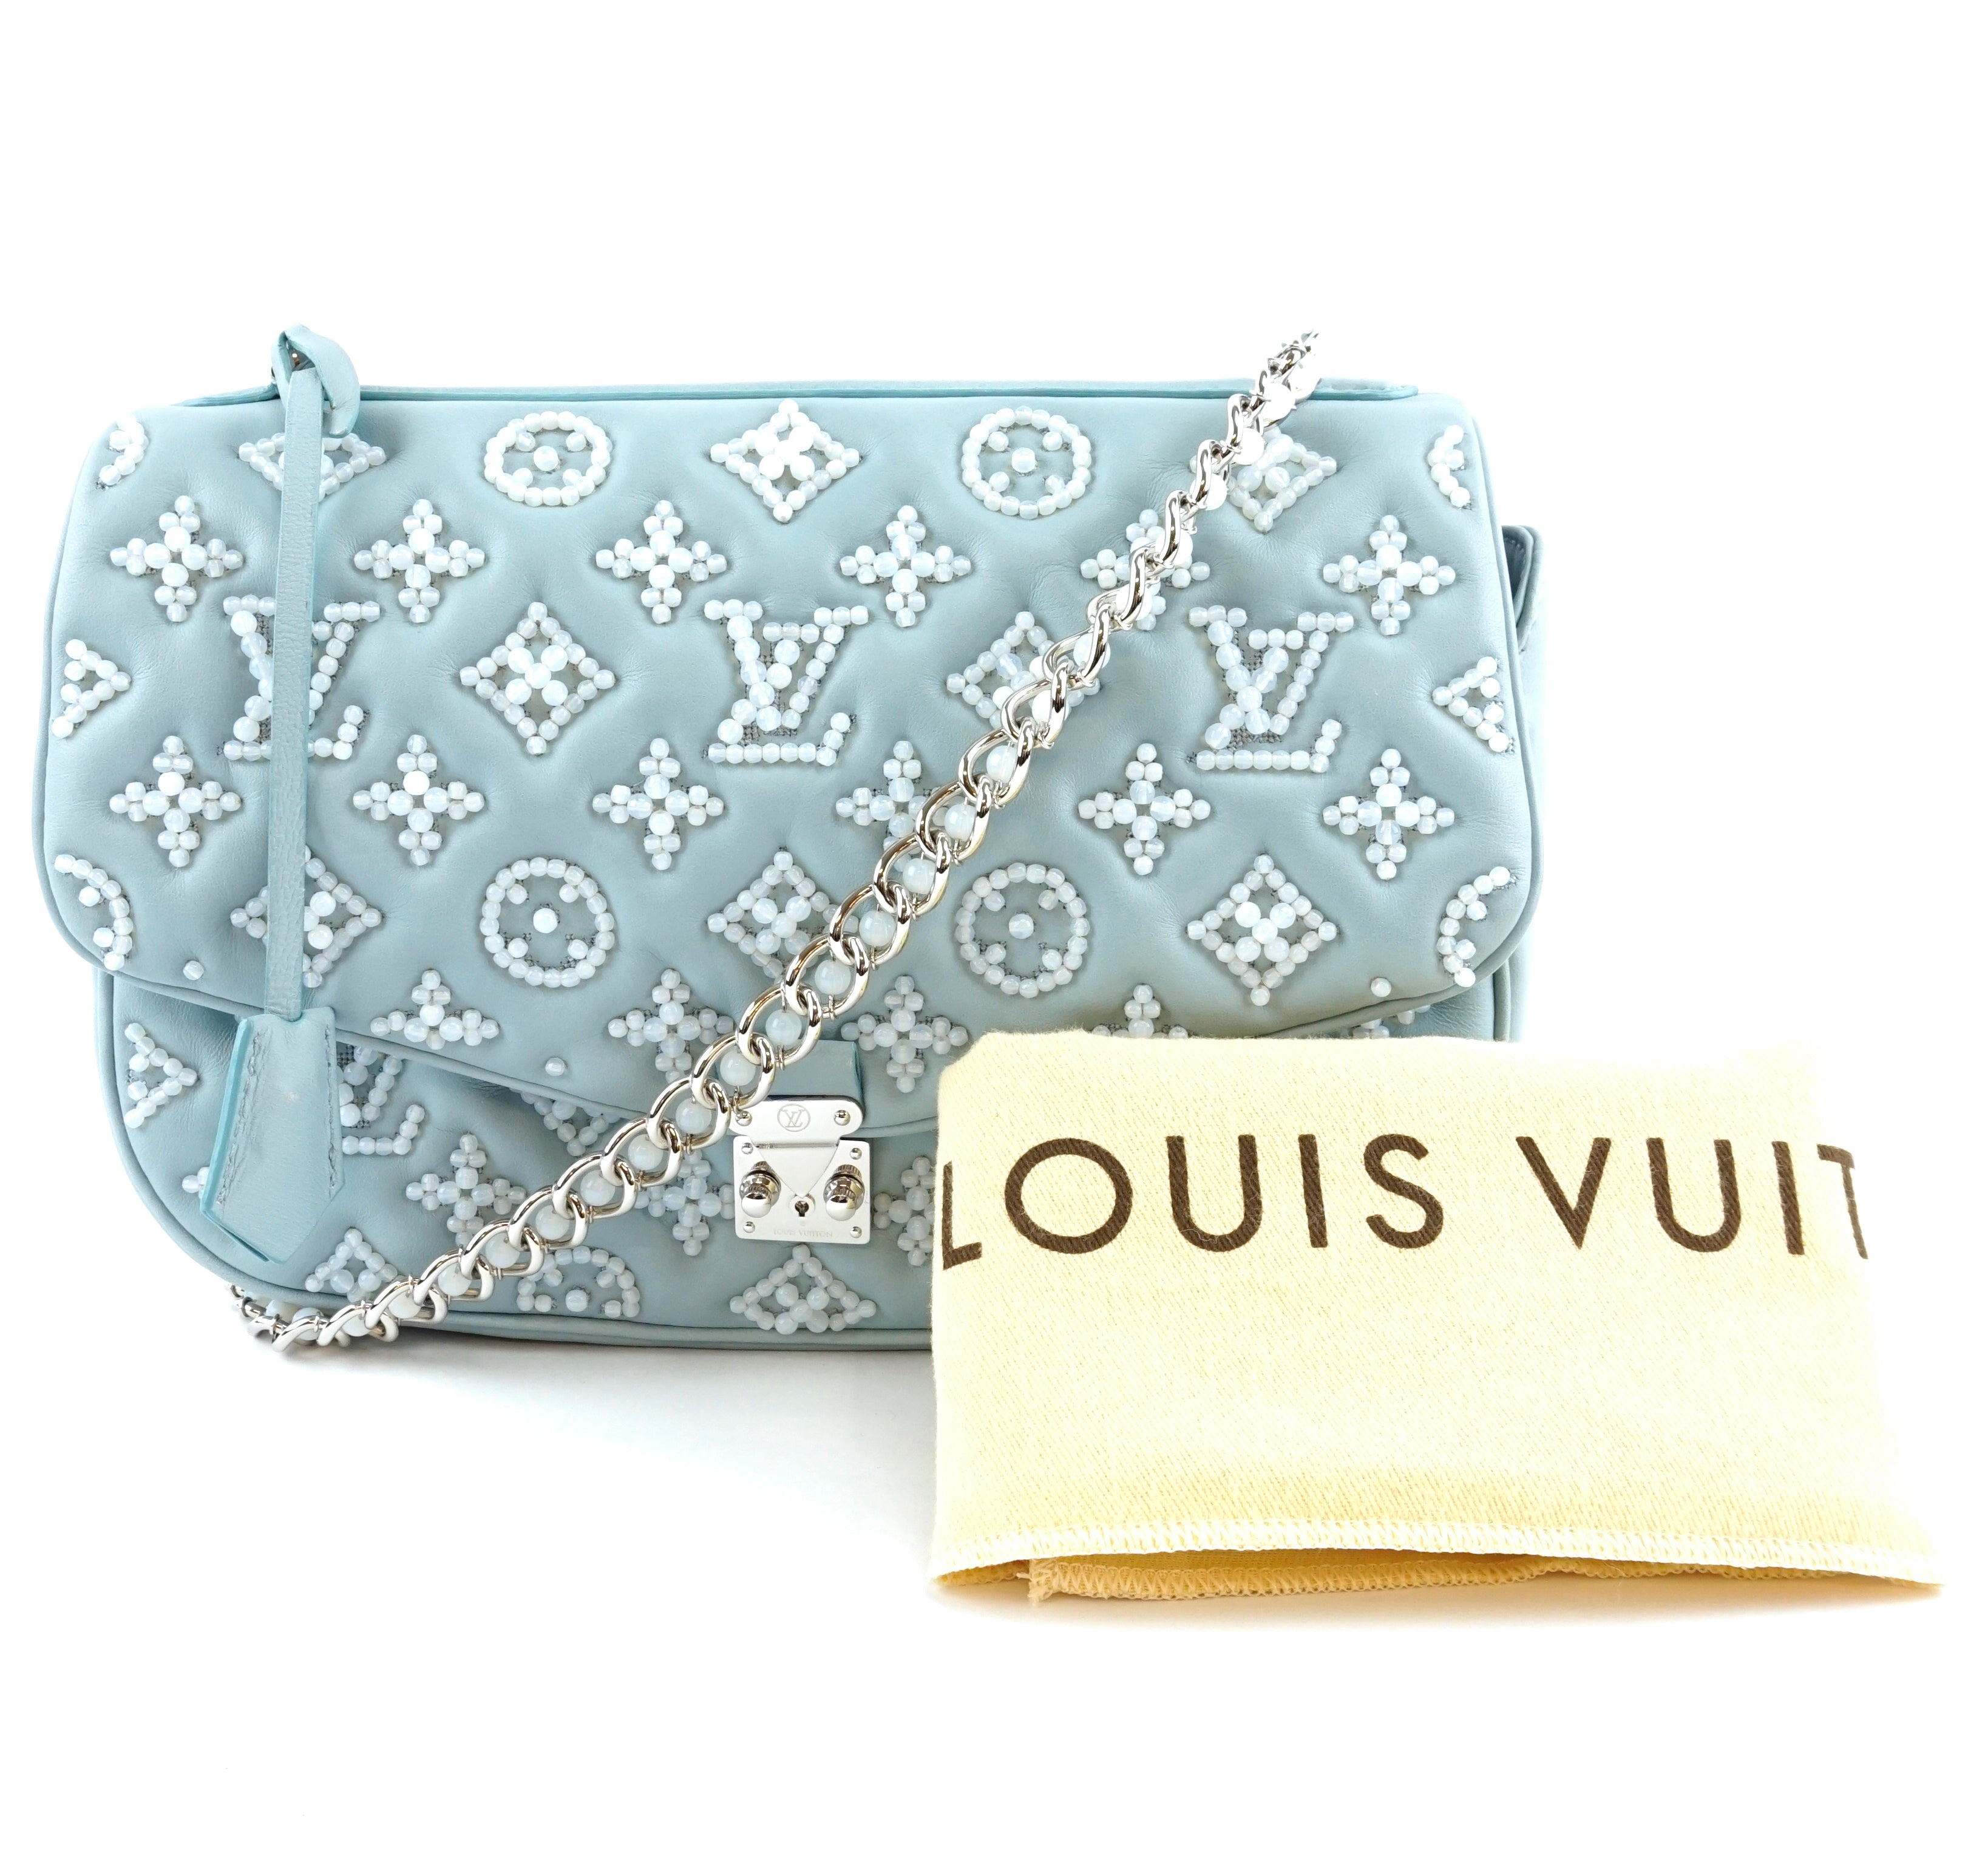 Louis Vuitton L'Extravagant L Metis Perles Baby Blue Beads Leather